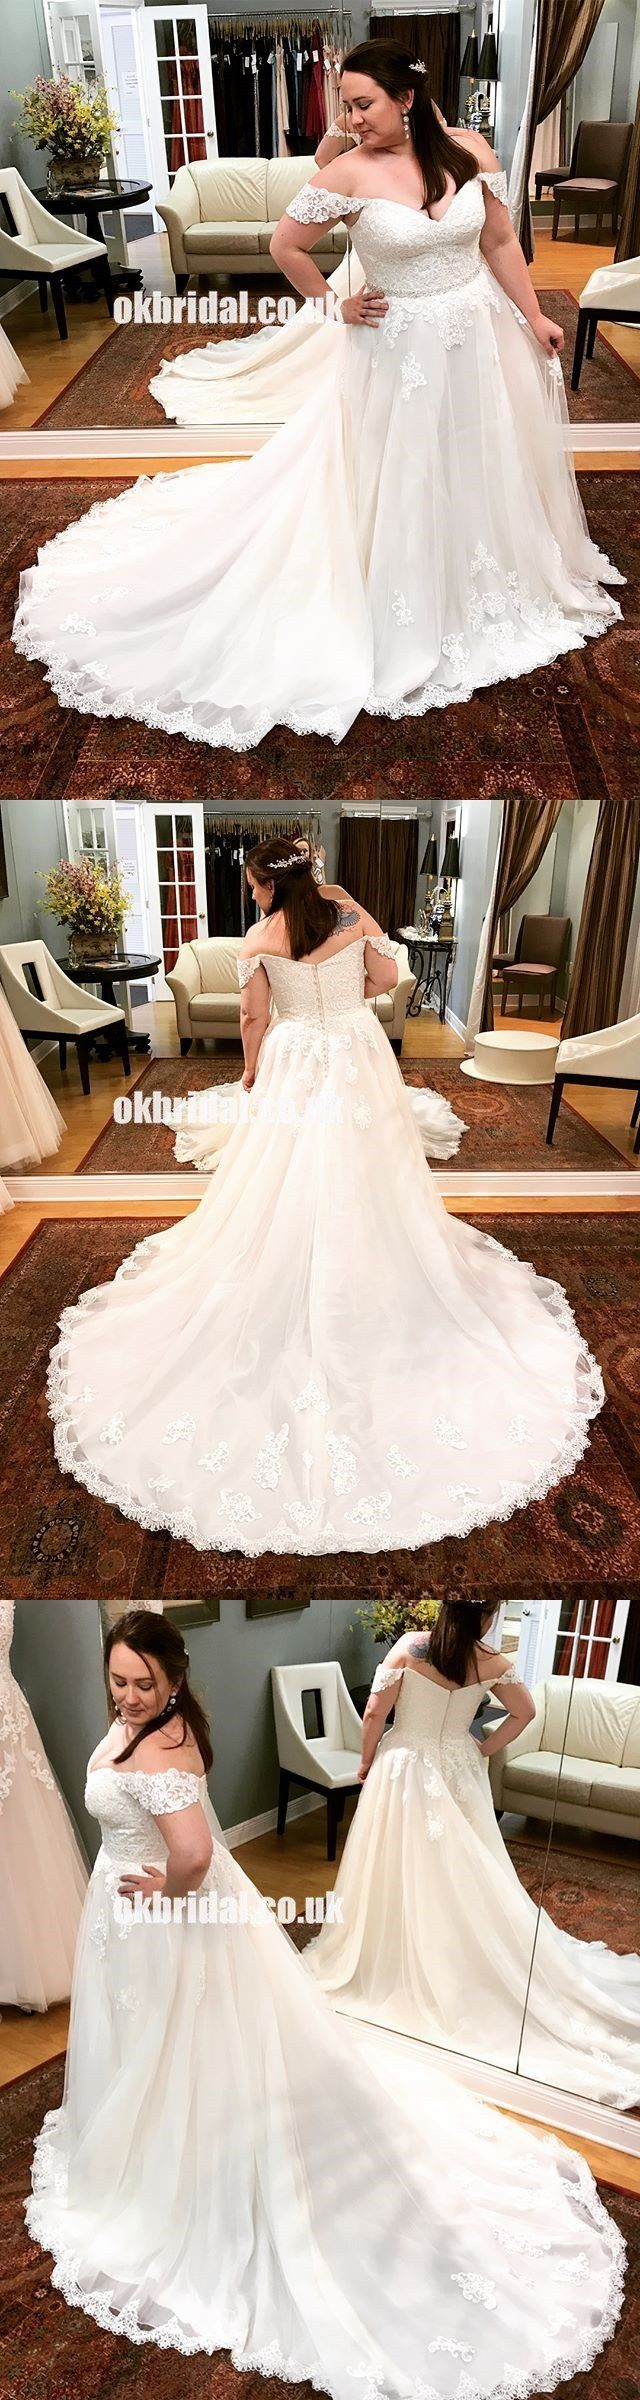 White off the shoulder wedding dress  Charming White Lace Off Shoulder Wedding Dress ALine Tulle